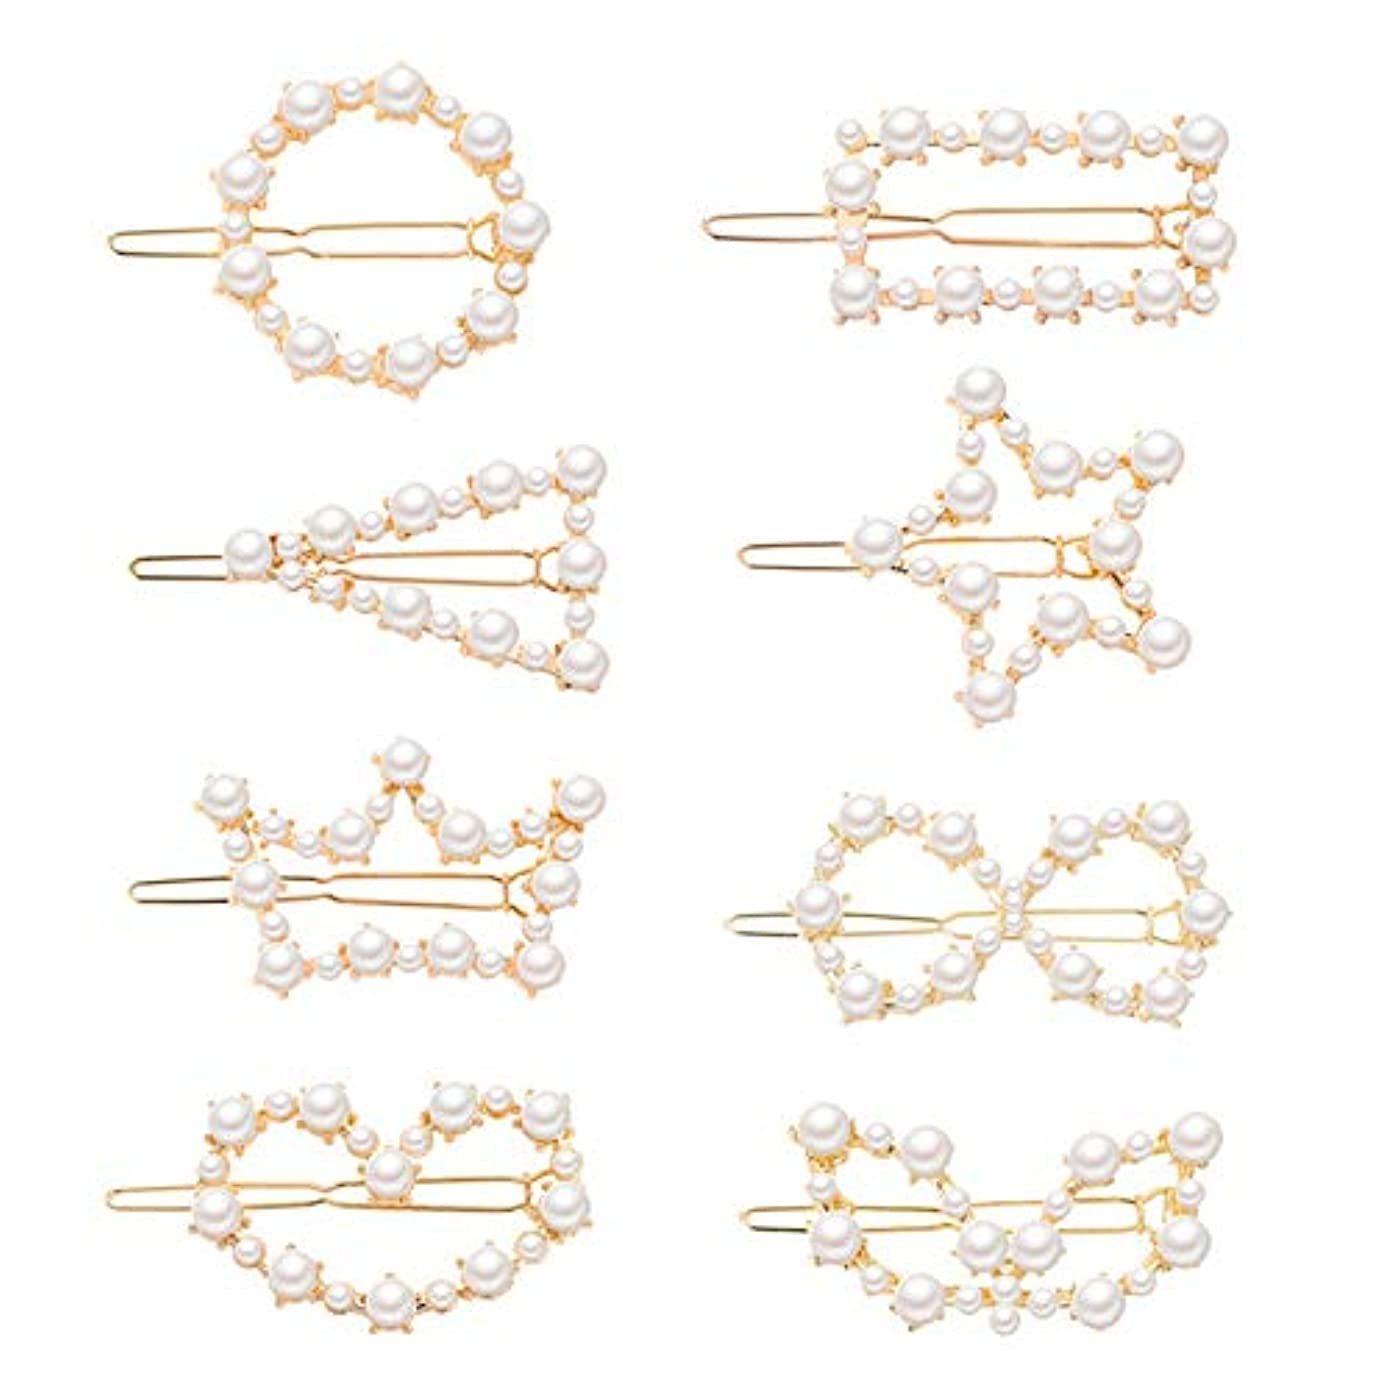 Cathy Clara INS Women's Cute Girl Pearl Beads Hairpin Hair Accessories Gift 8PC,Women Stylish Pearl Metal Hair Clip